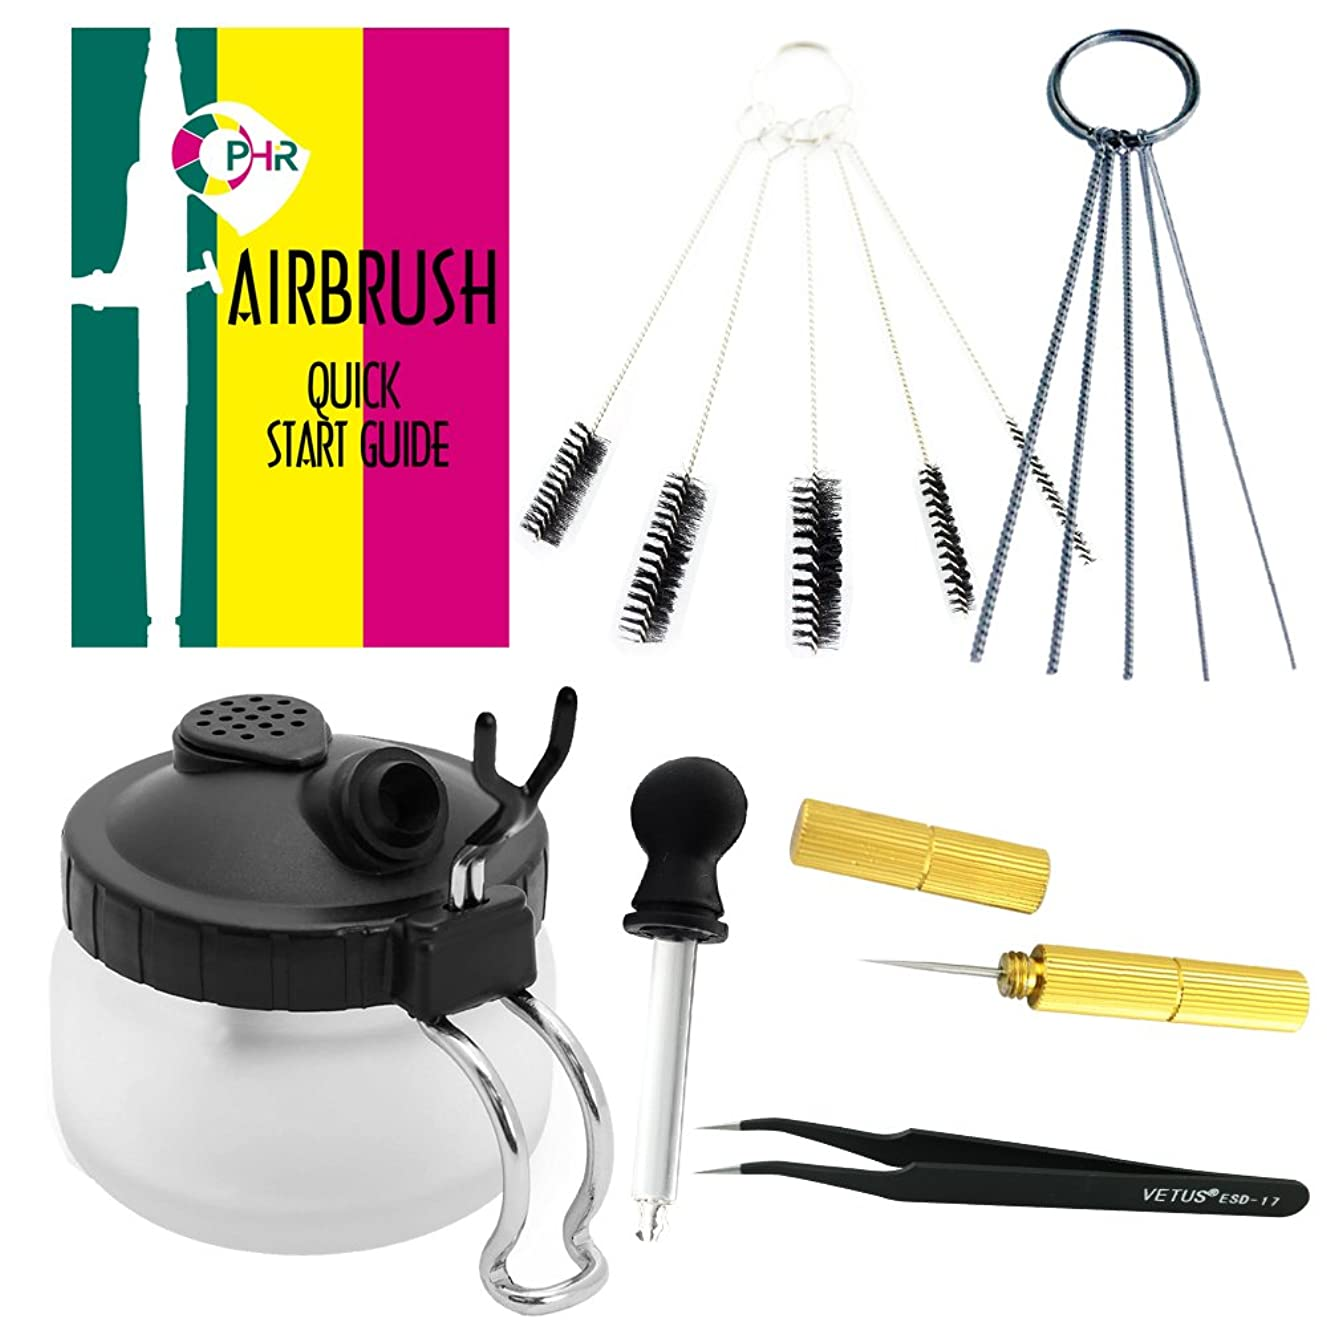 OPHIR 15PCS Airbrush Cleaning Kit Cleaning Station Tools-Cleaning Pot Jar with Holder,Cleaning Brush Barrel,Cleaning Needle,Tweezers,Dropper and Quick Start Guide (15PCS Airbrush Cleaning Tools Kit)